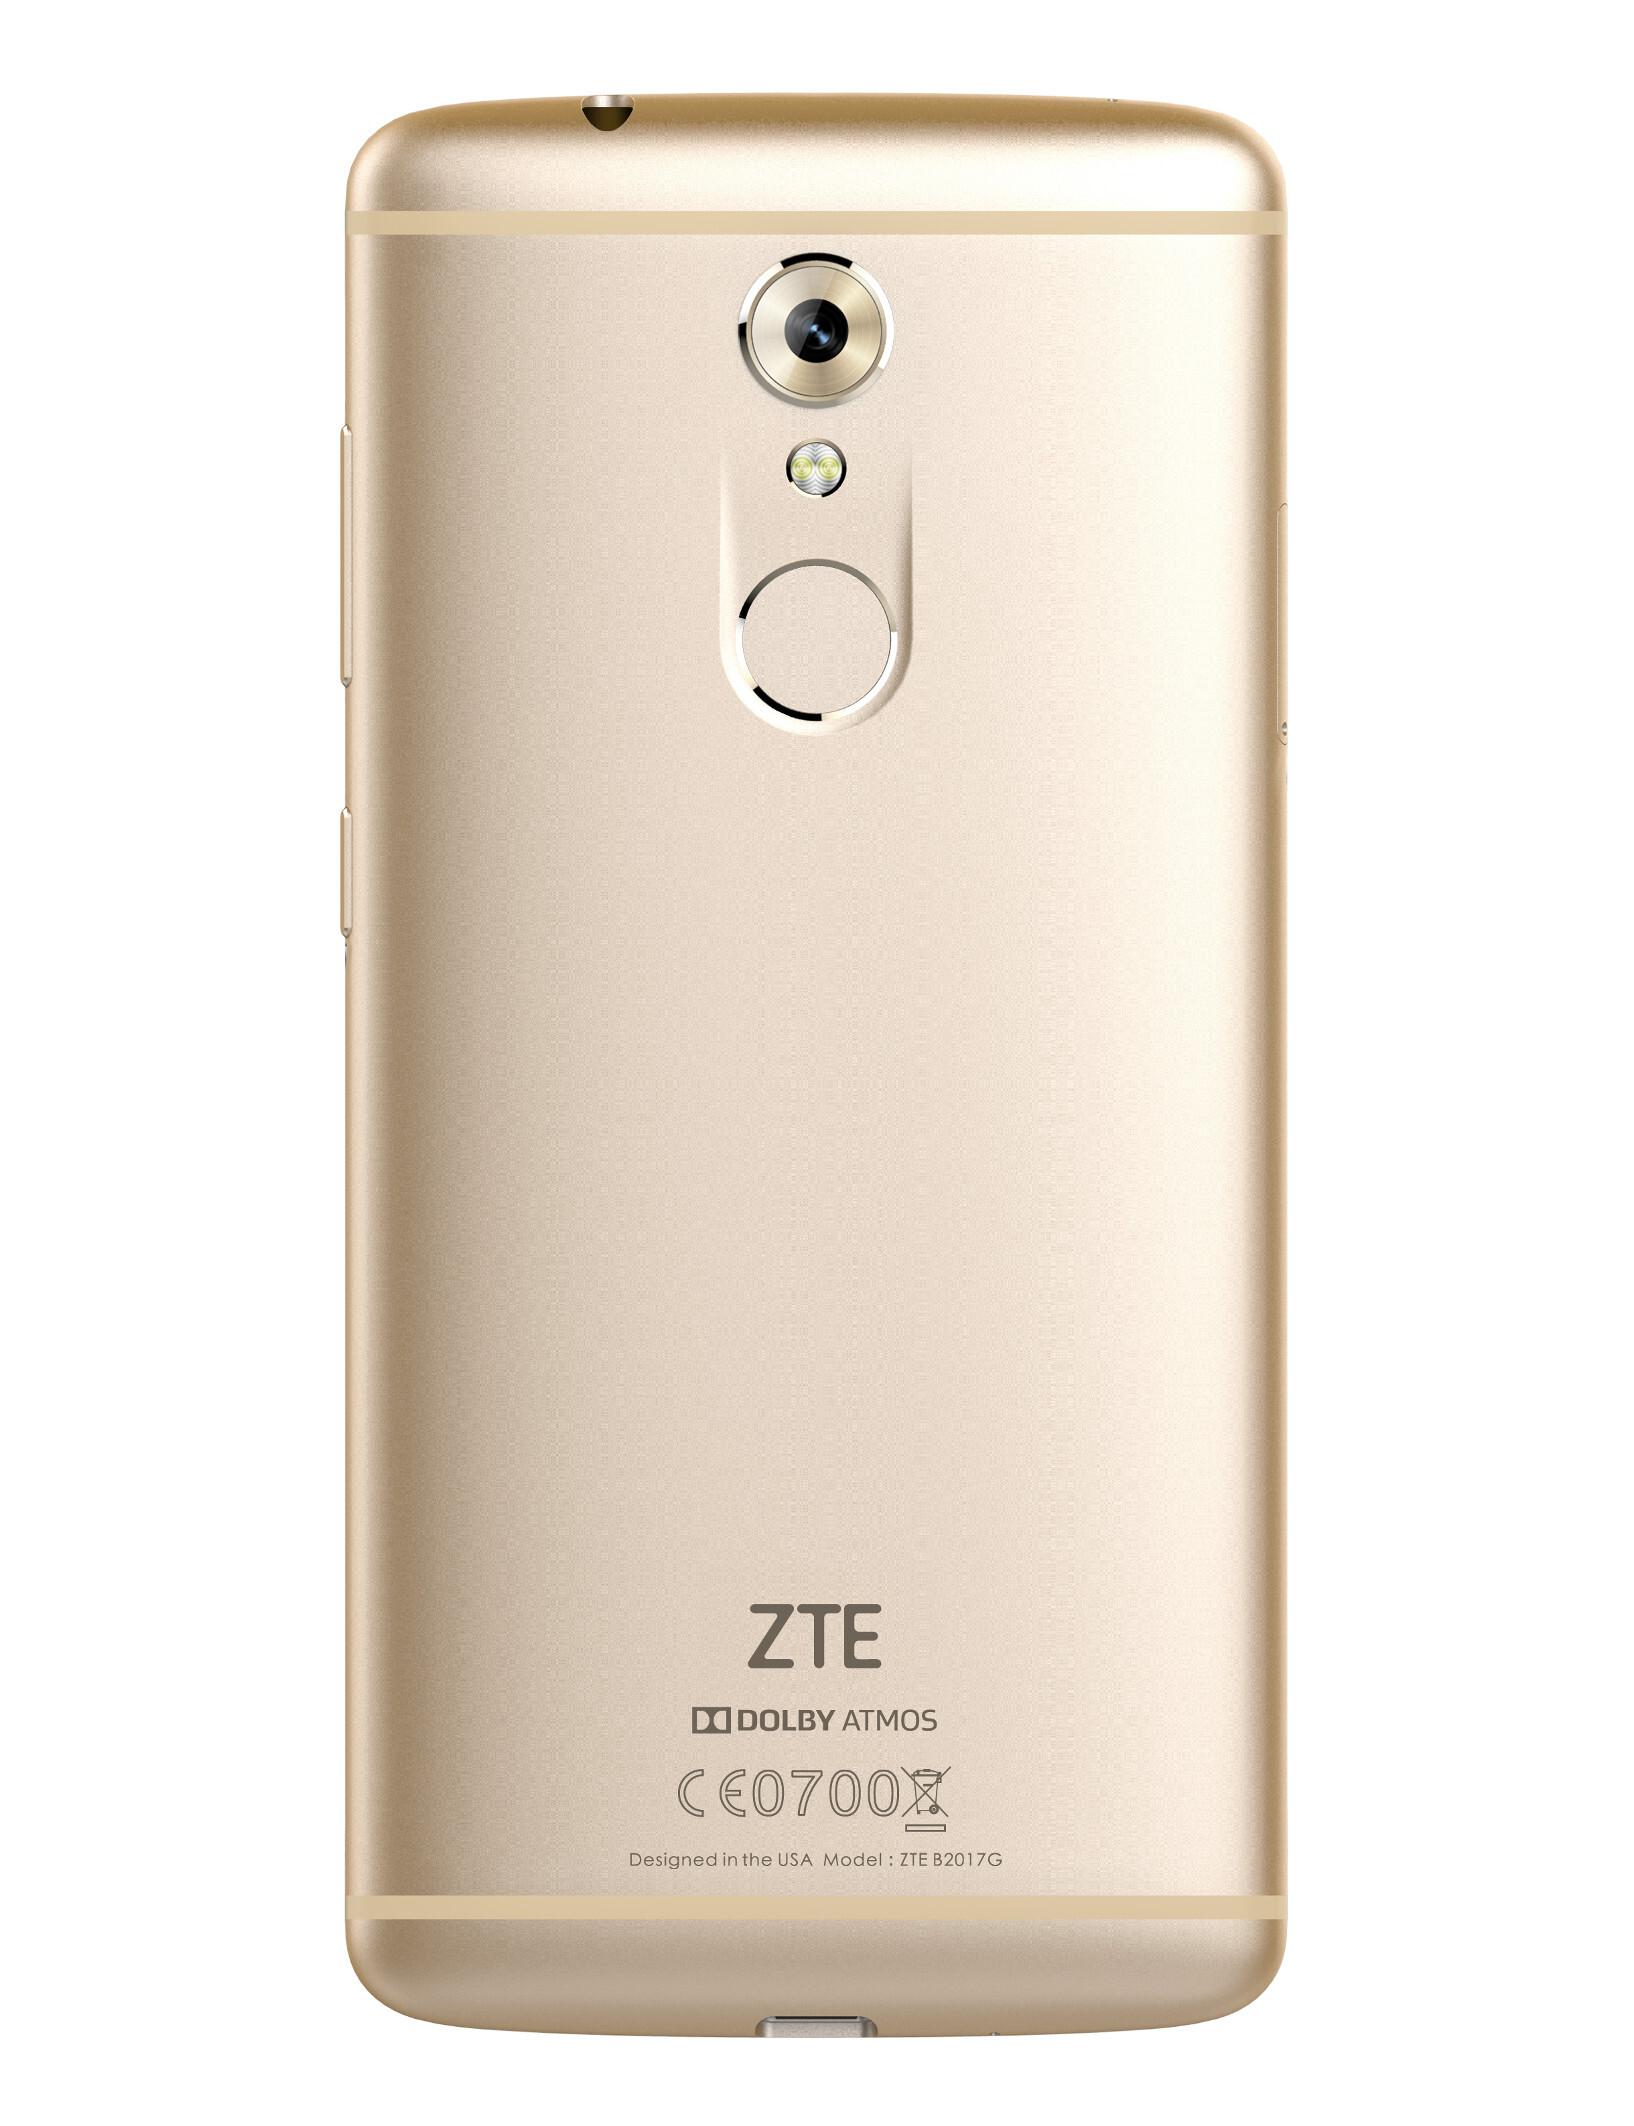 zte axon 7 mini 4g lte review allows partner and